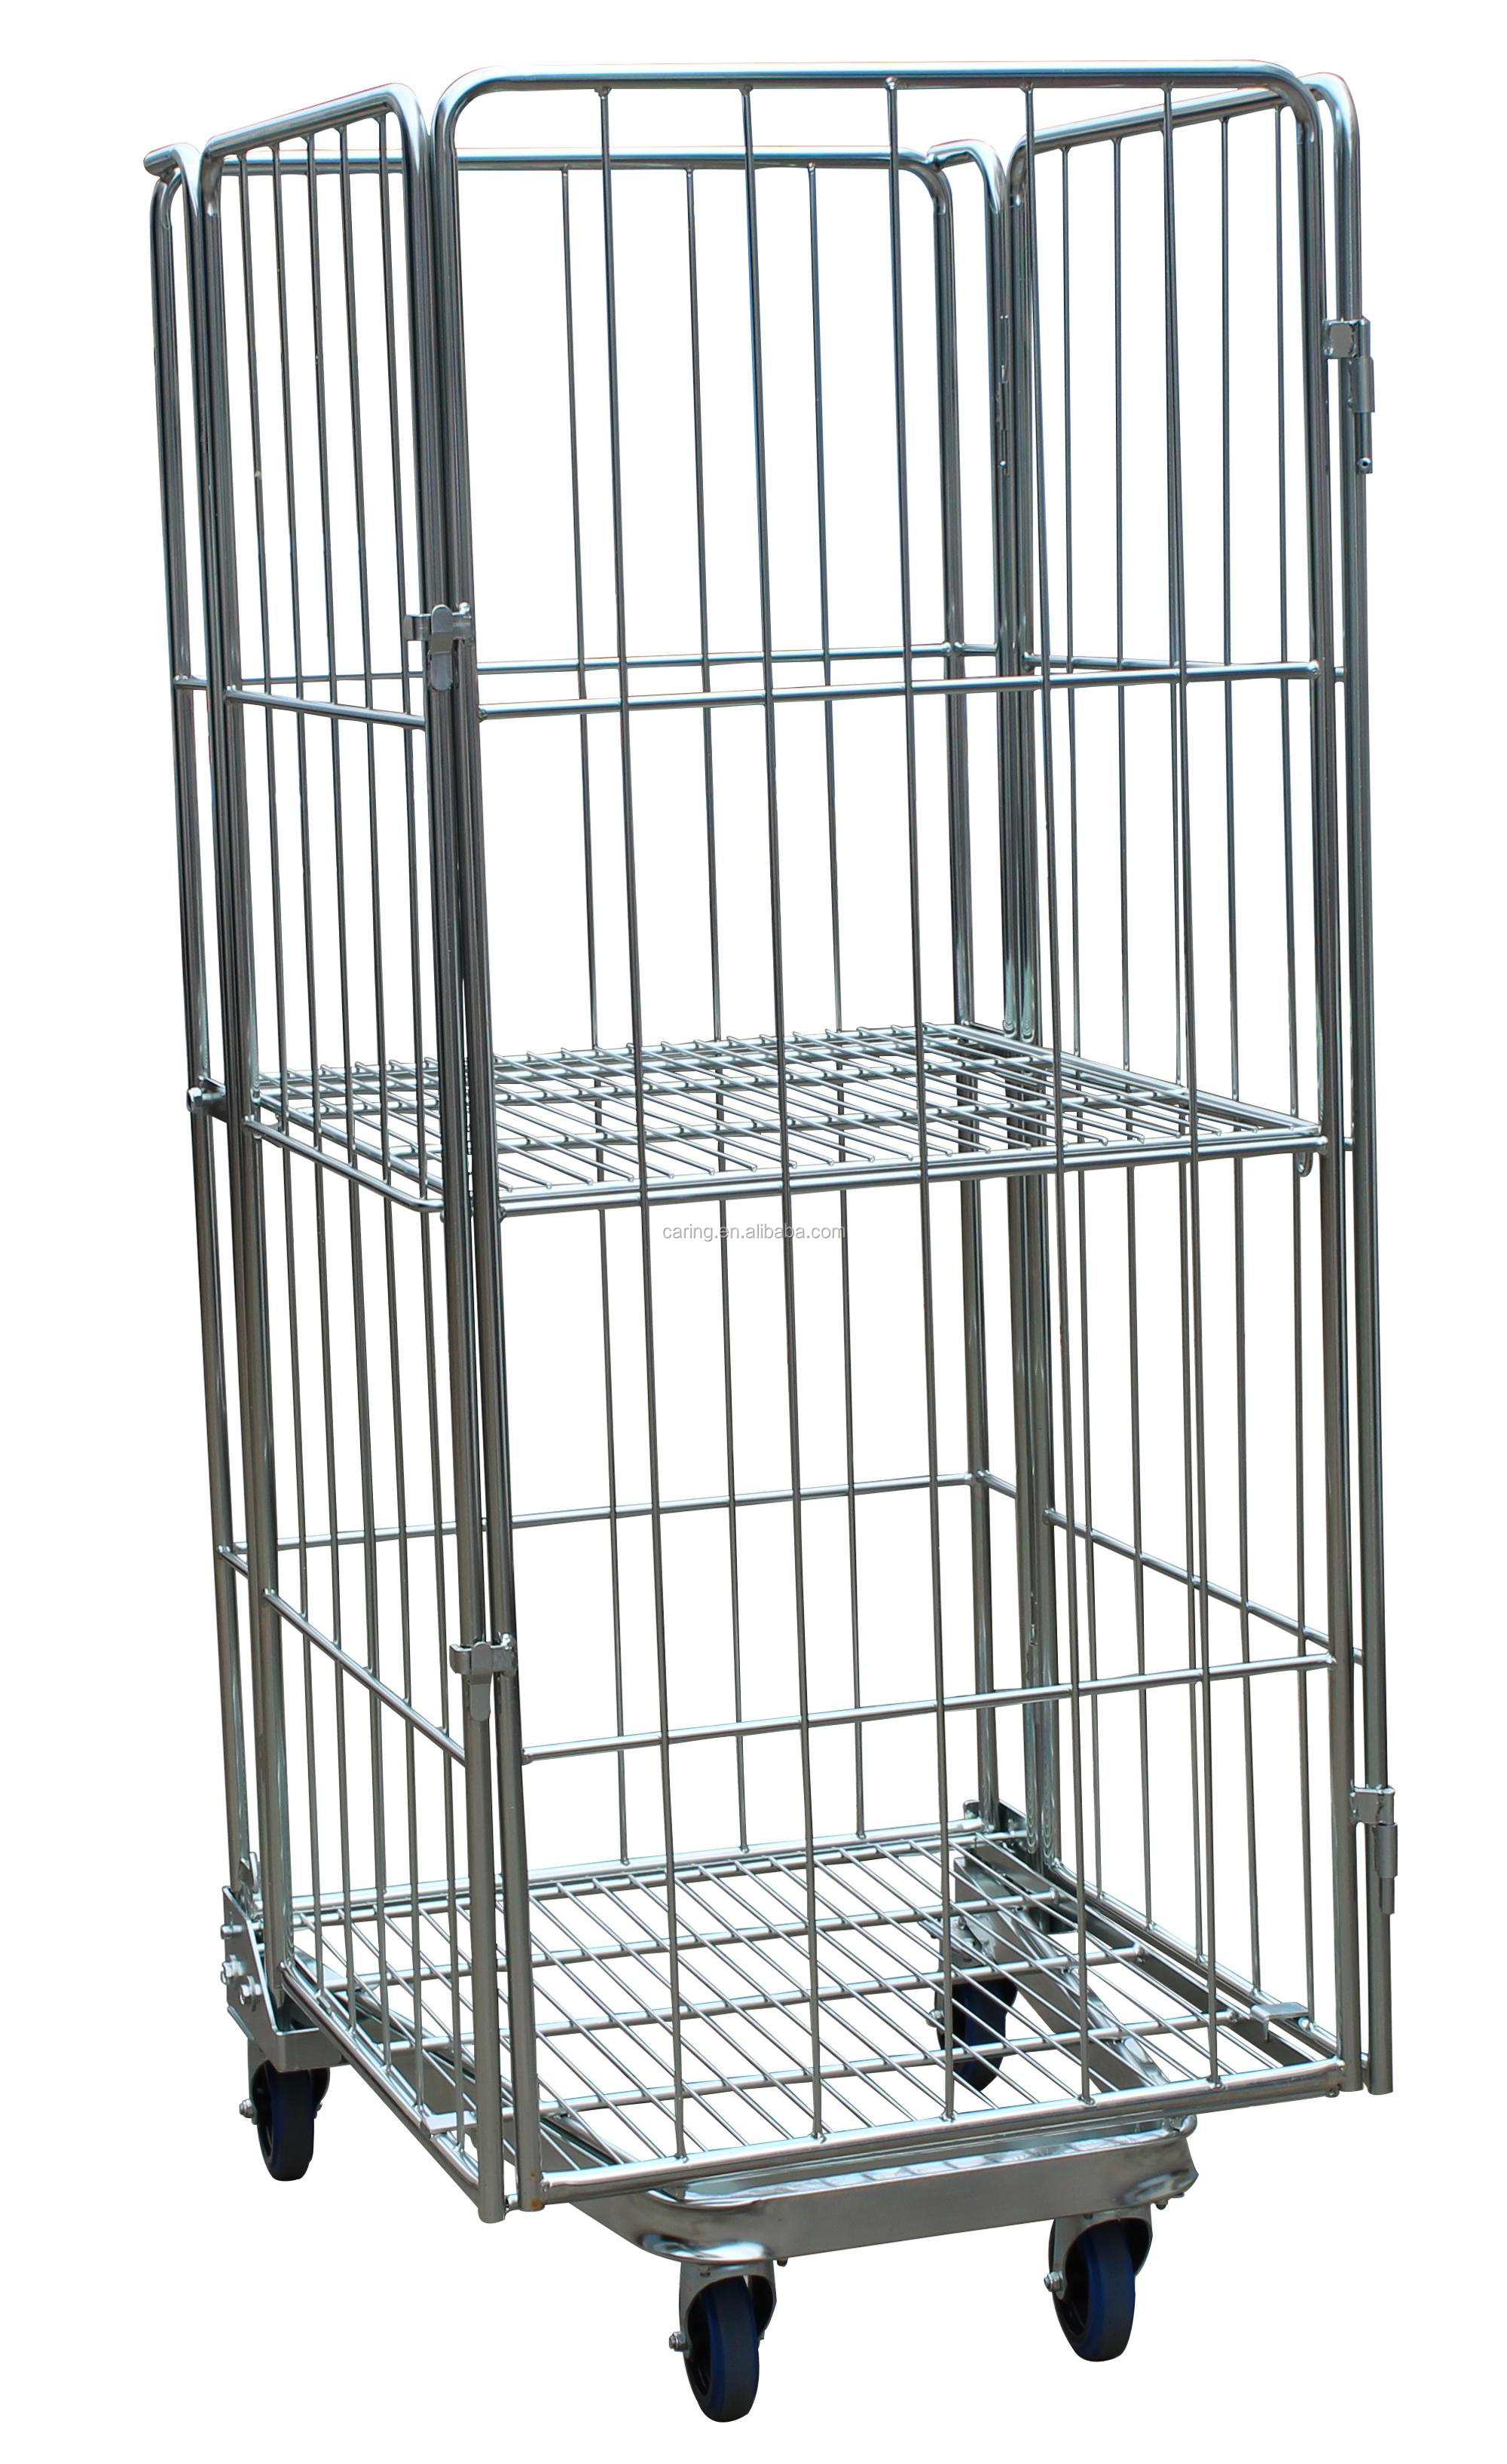 Warehouse Picking Cart/roll Cage Trolley/warehouse Roll Container - Buy  Warehouse Picking Cart/roll Cage Trolley/warehouse Roll Container,Metallic